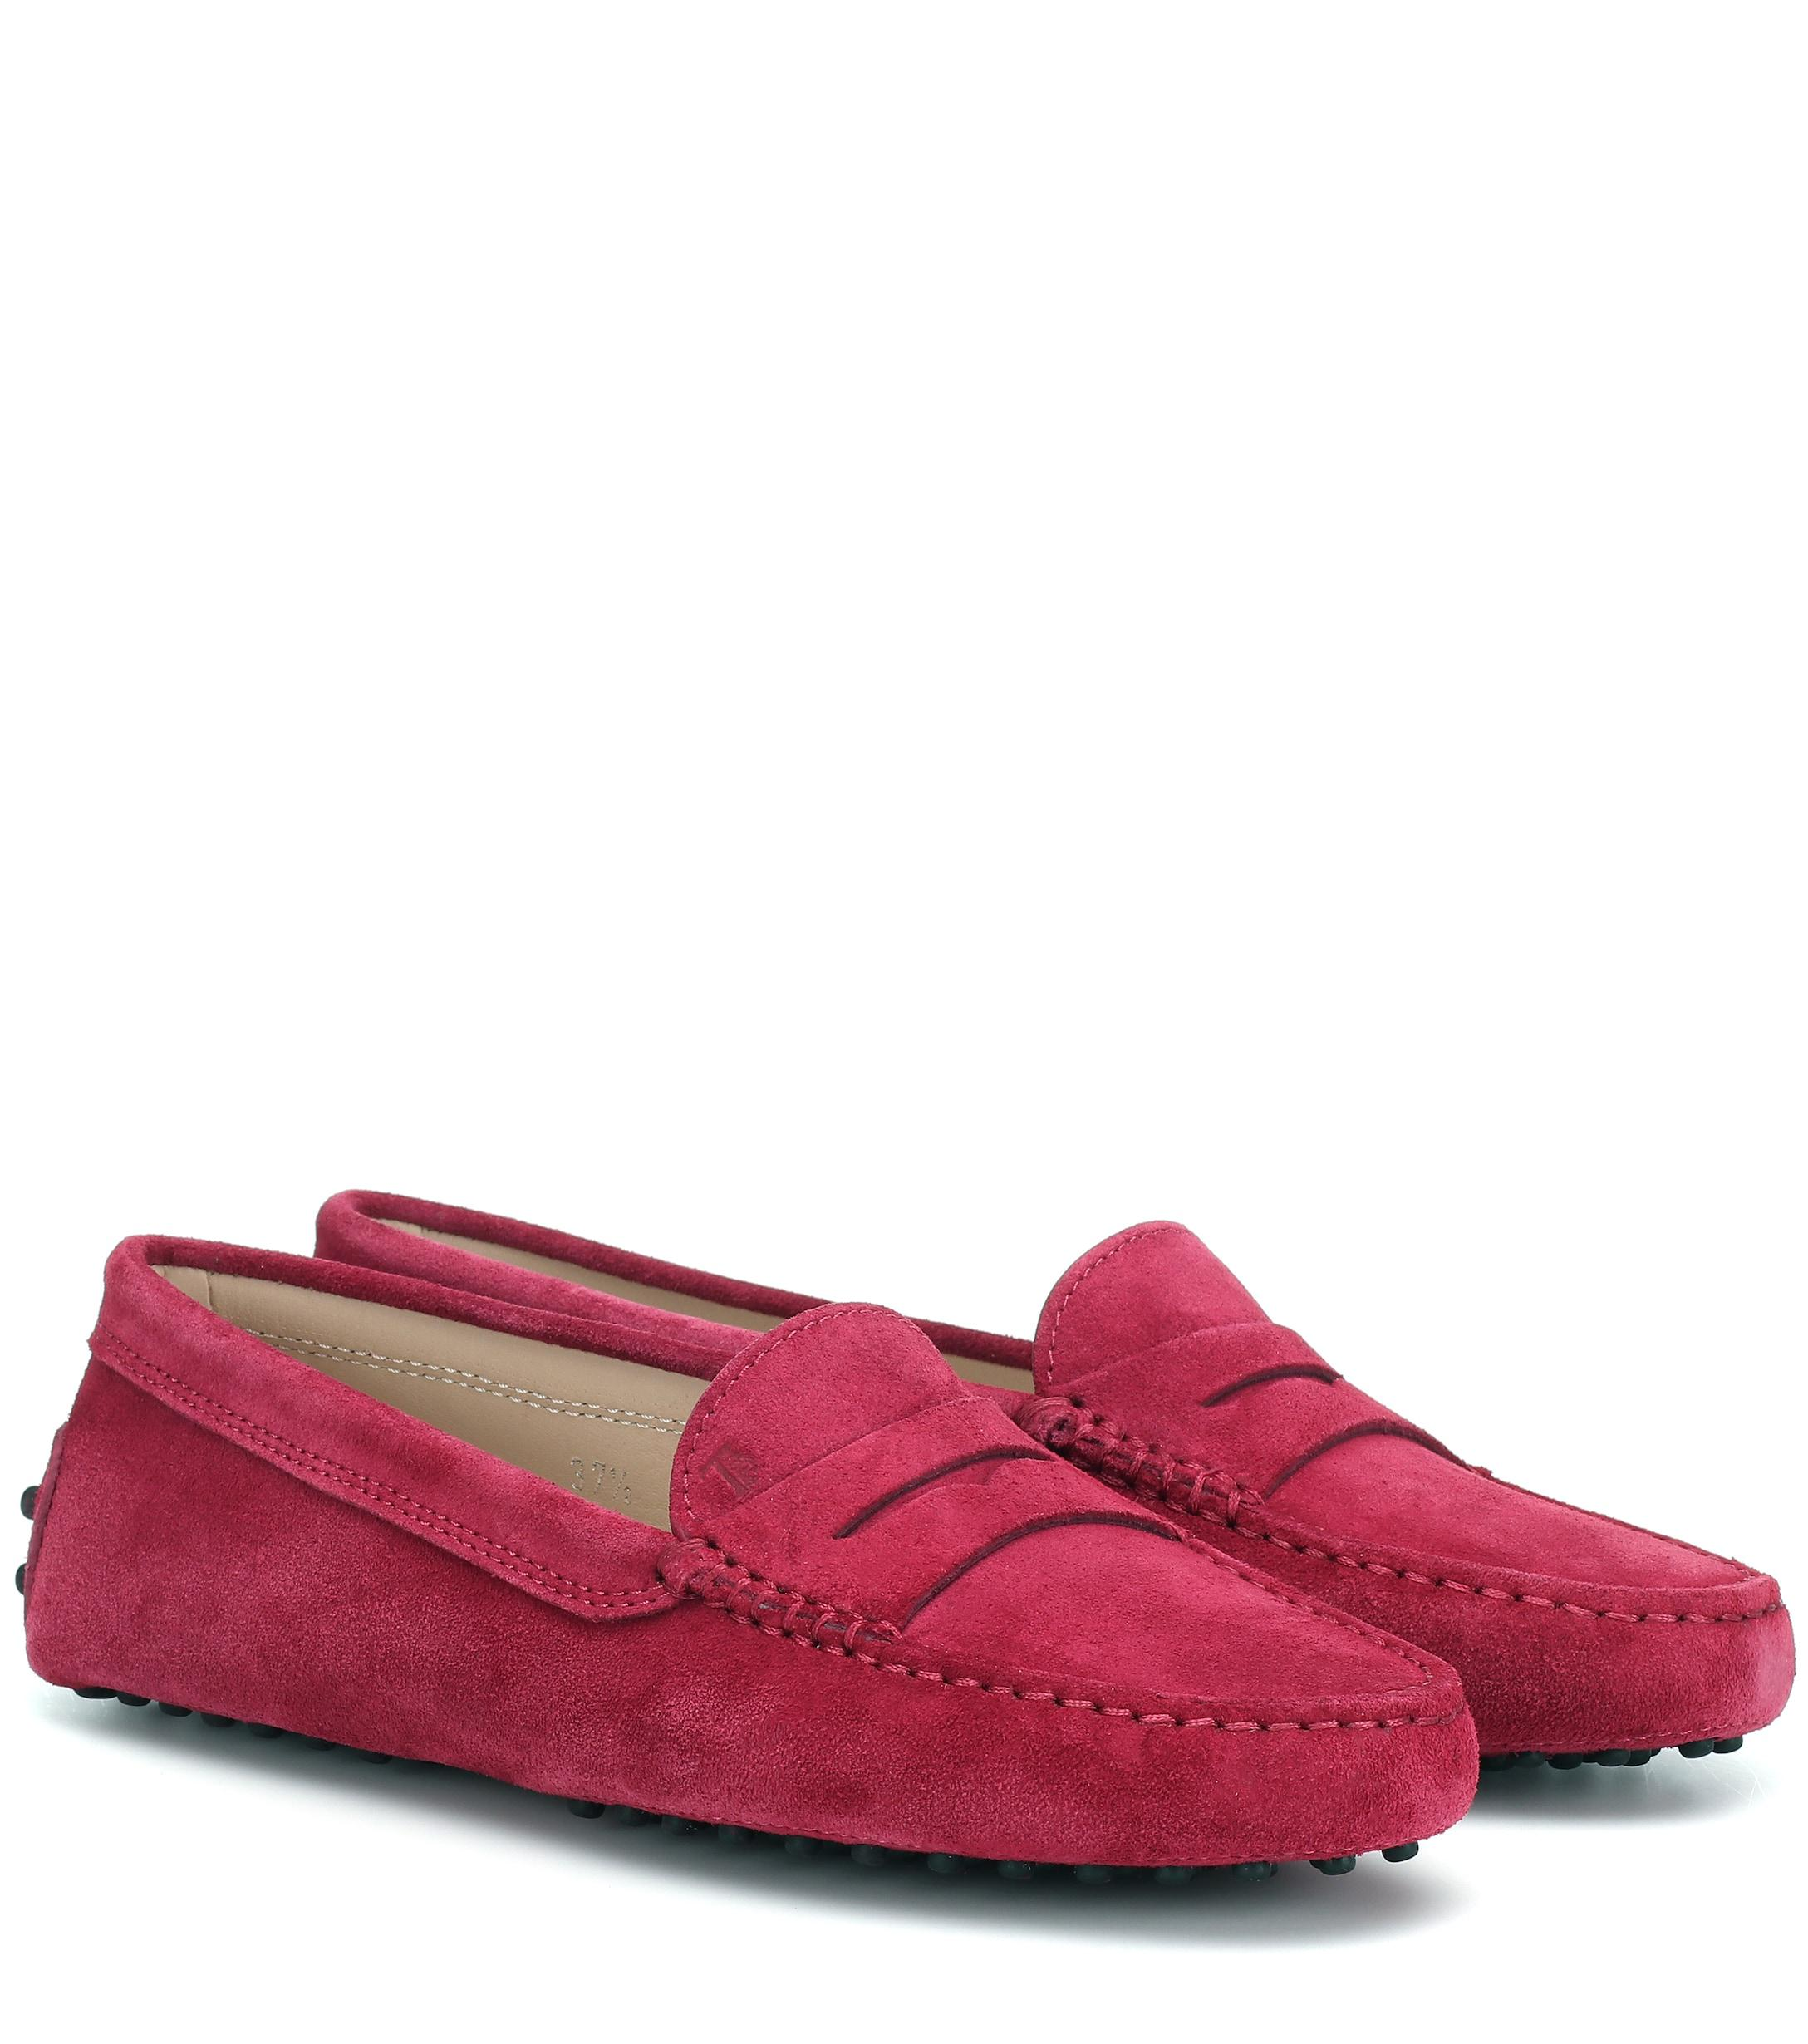 d4b727622c7 Tod s. Women s Gommino Suede Loafers